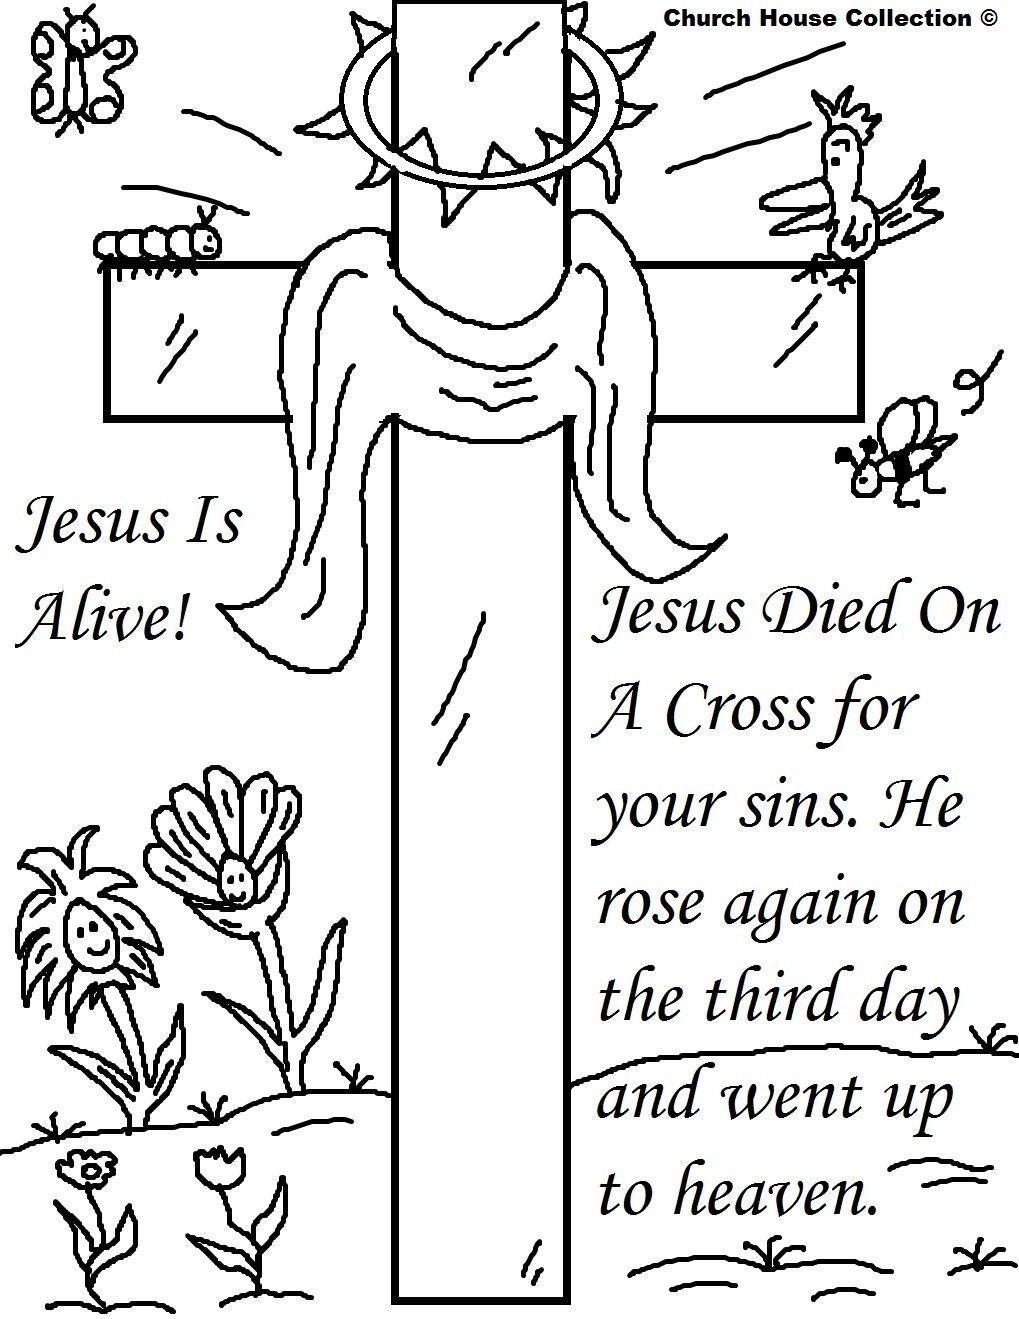 25 Religious Easter Coloring Pages | Free Easter Activity Printables - Coloring Pages Free Printable Easter